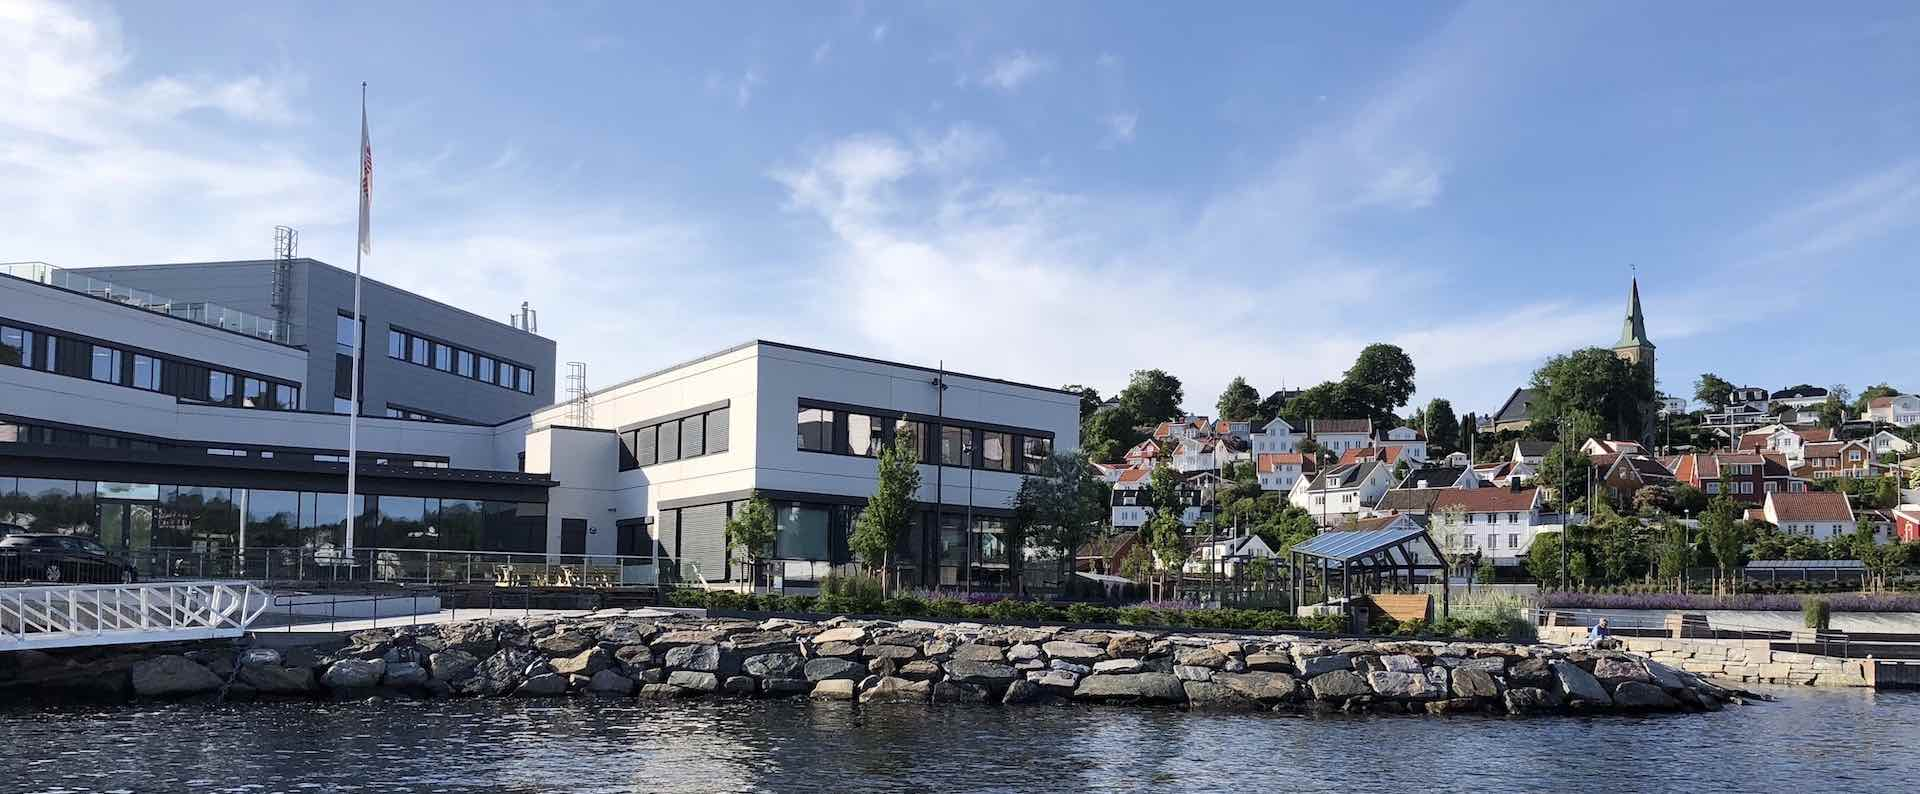 Norac's headquarter in Arendal, Norway